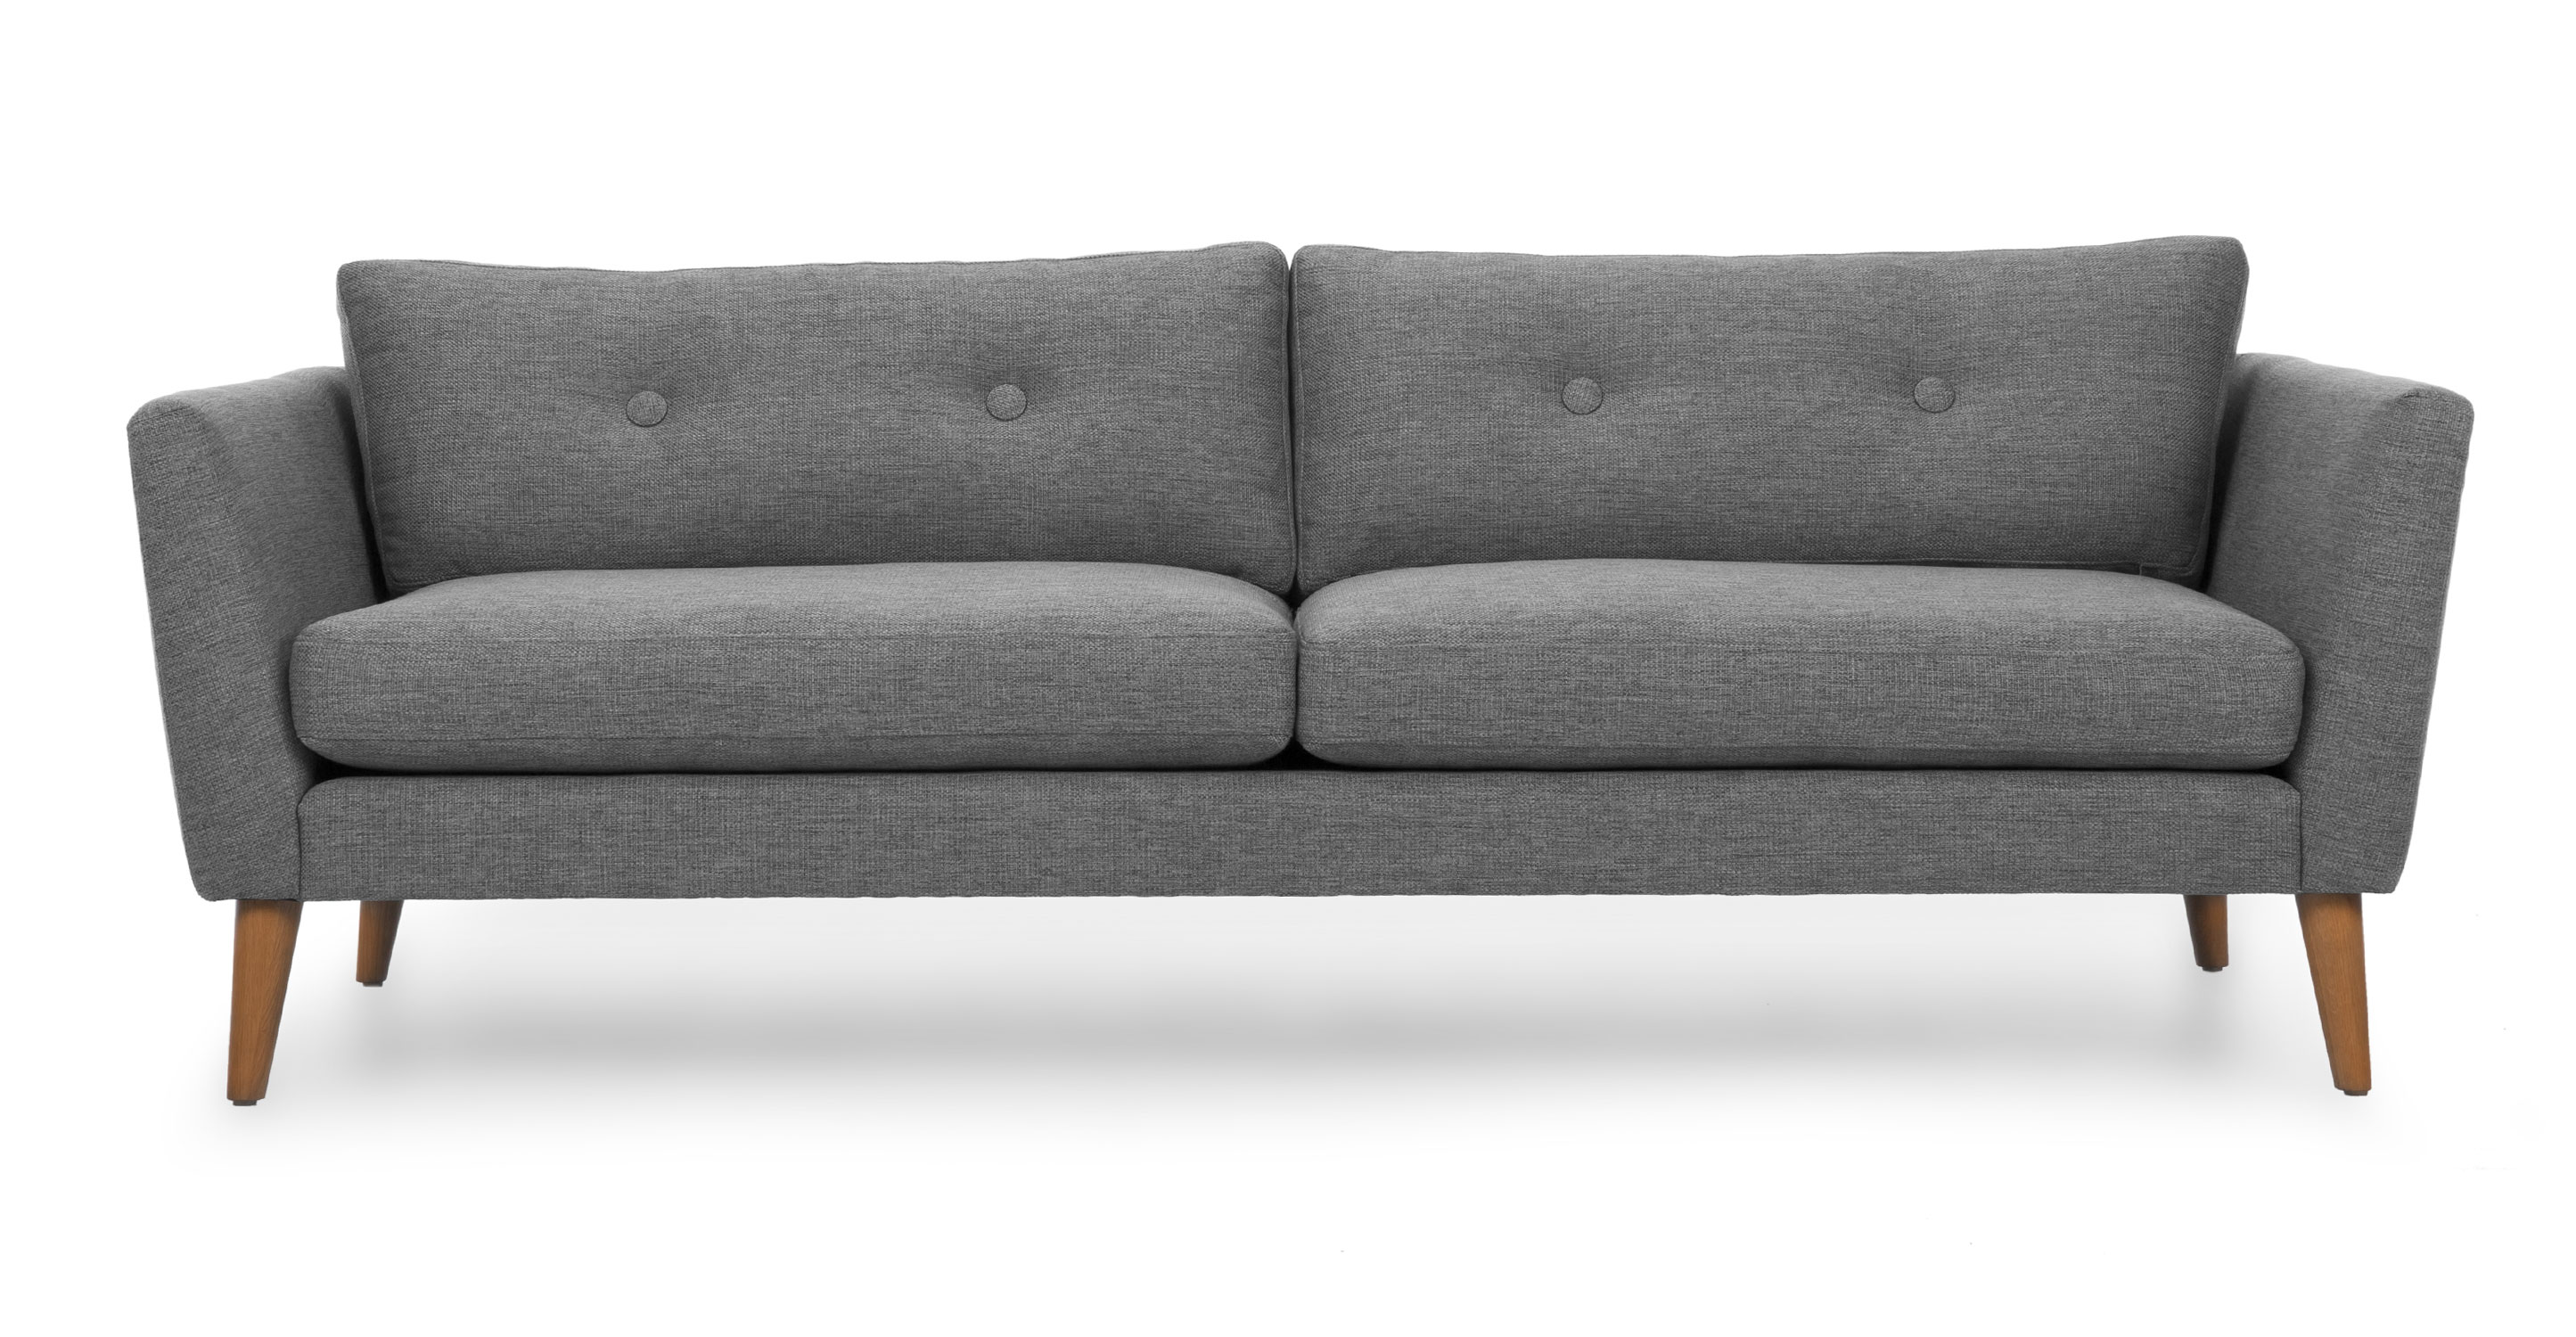 gray couch Emil Gravel gray sofa - Sofas - Article    Modern, Mid-Century and FNQFAEE